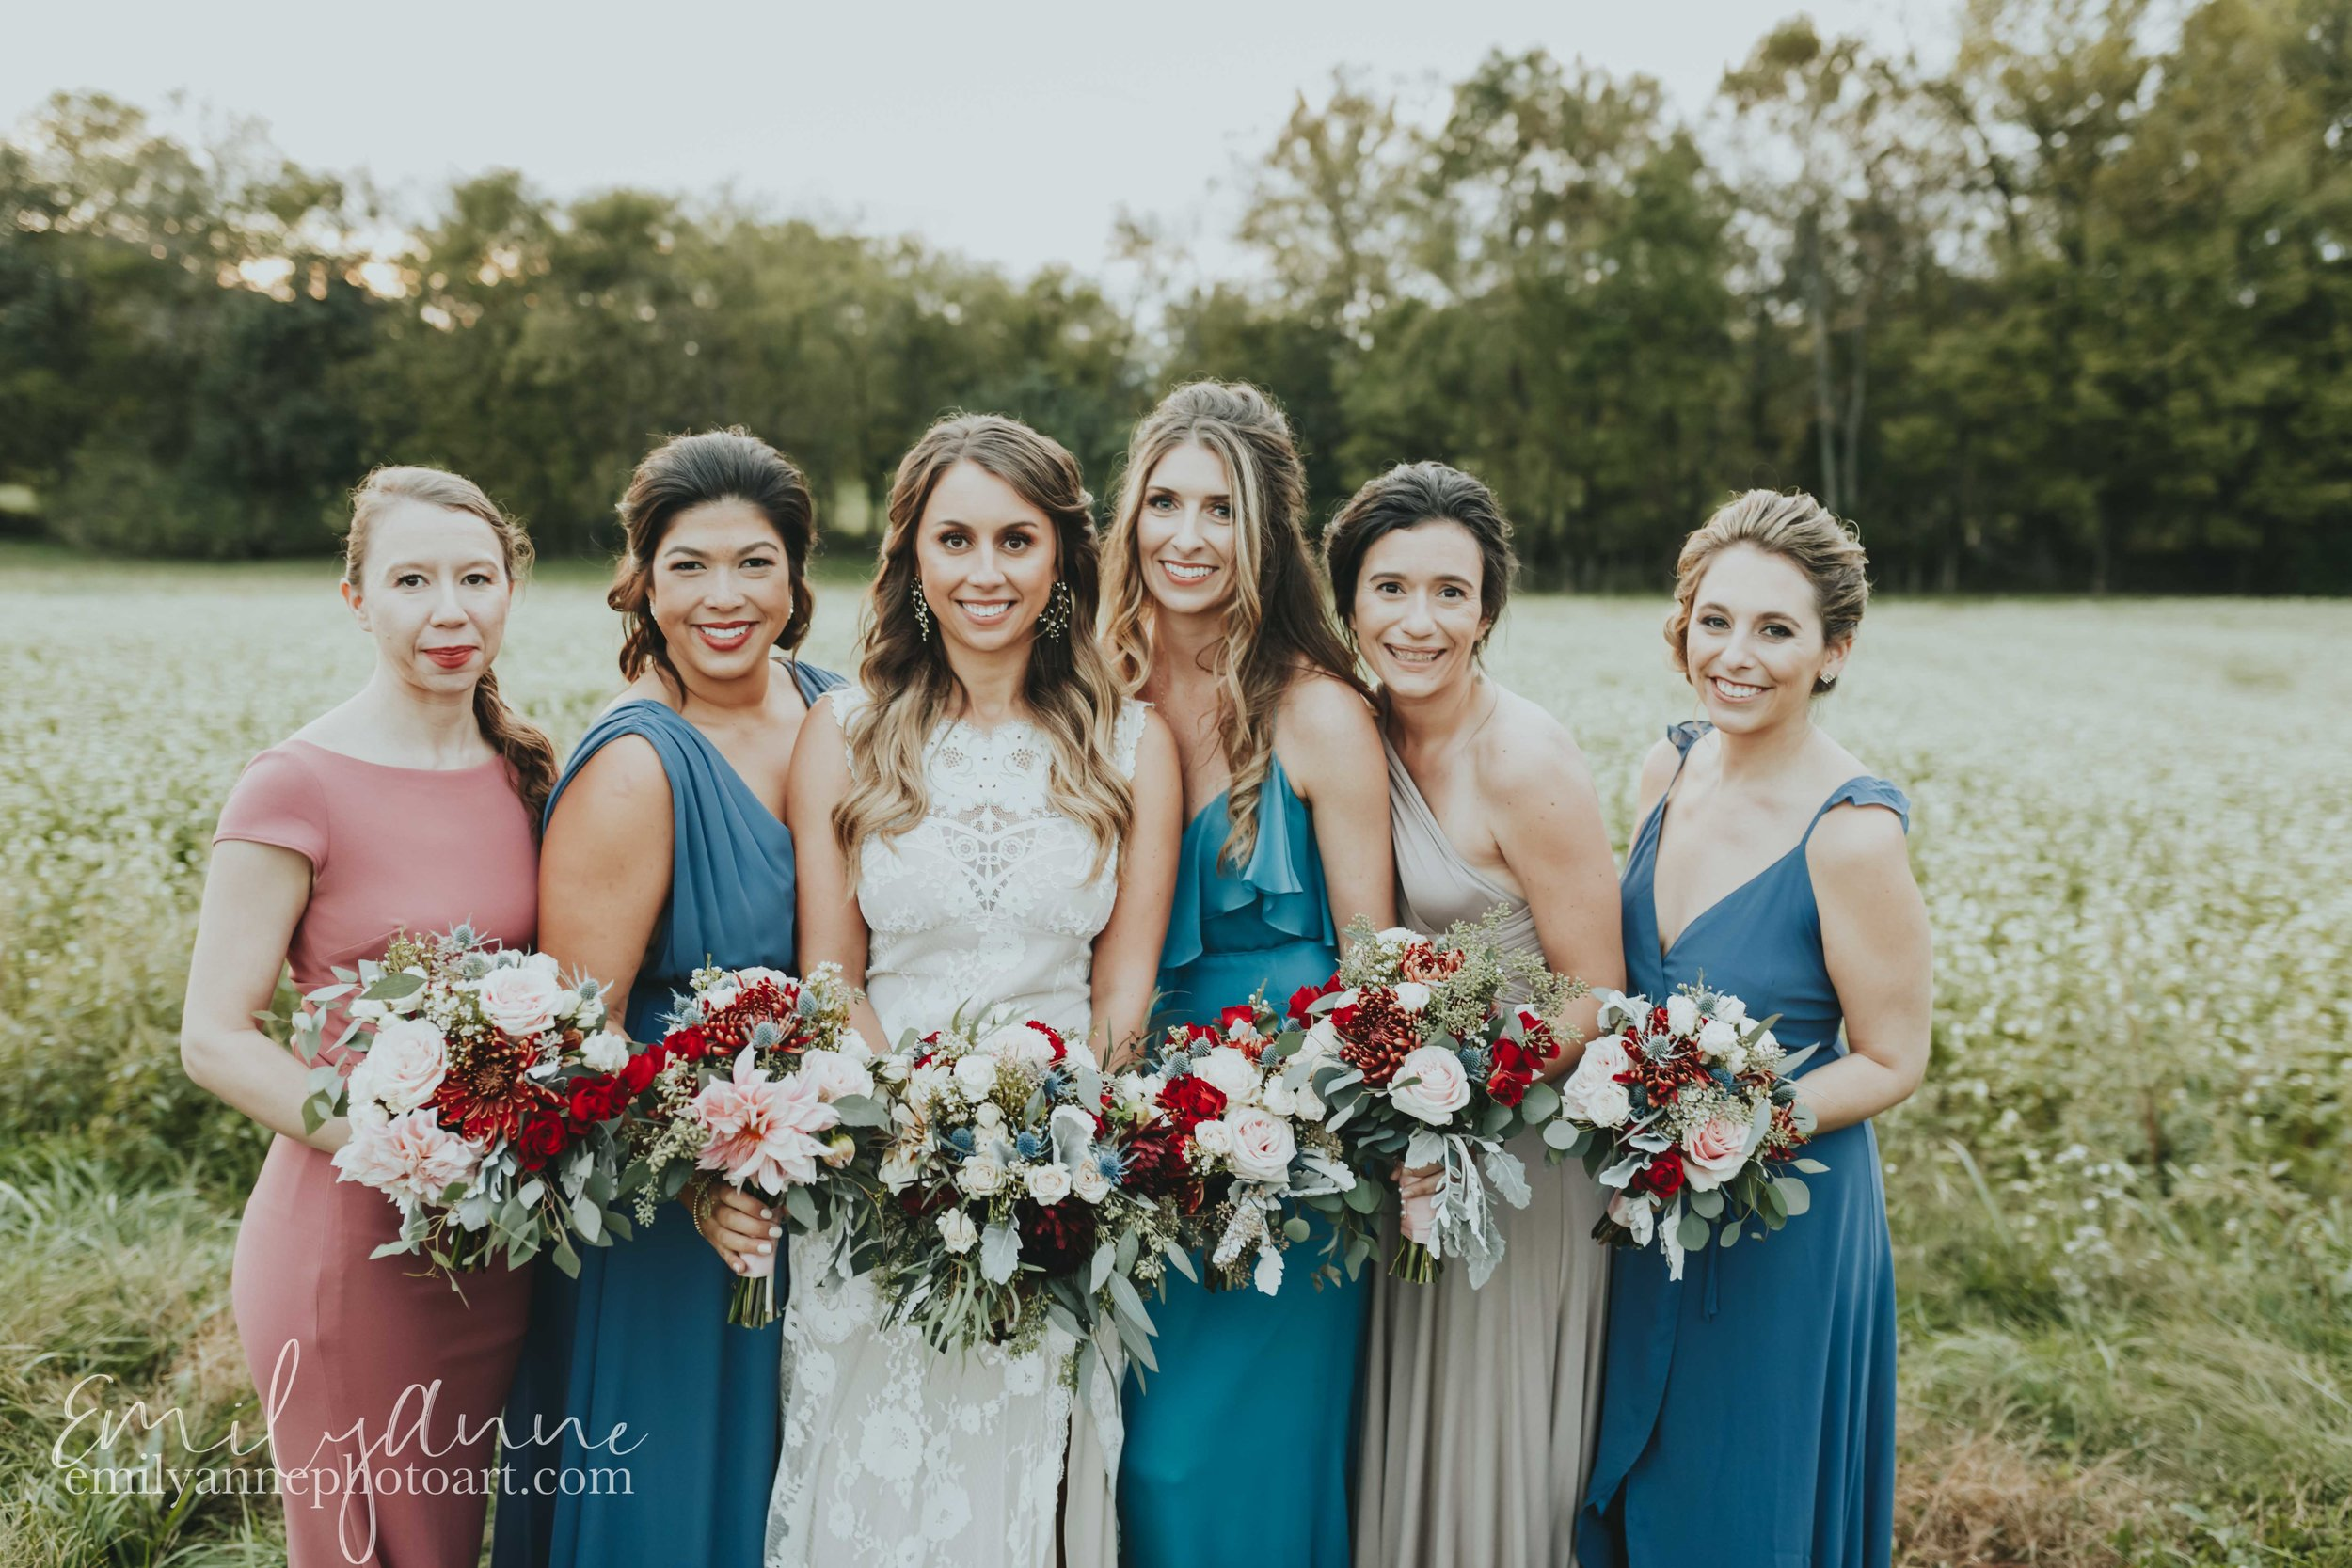 best wedding photographer in nashville the bridal party picture at Allenbrooke farms by best wedding photographer Emily Anne